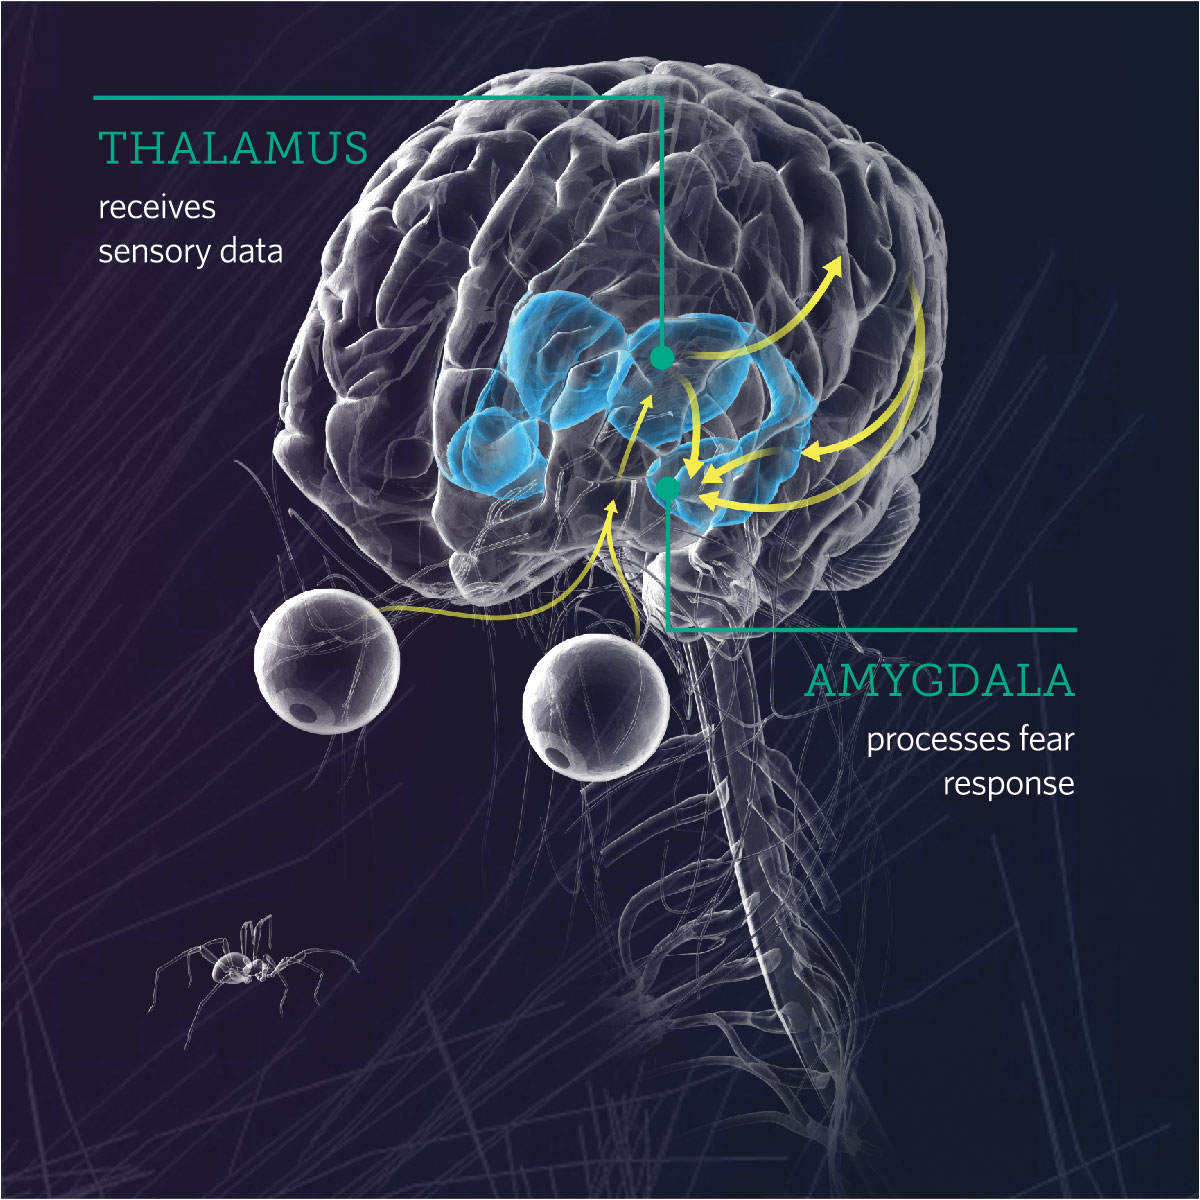 Diagram of the human brain showing locations of the thalamus and amygdala